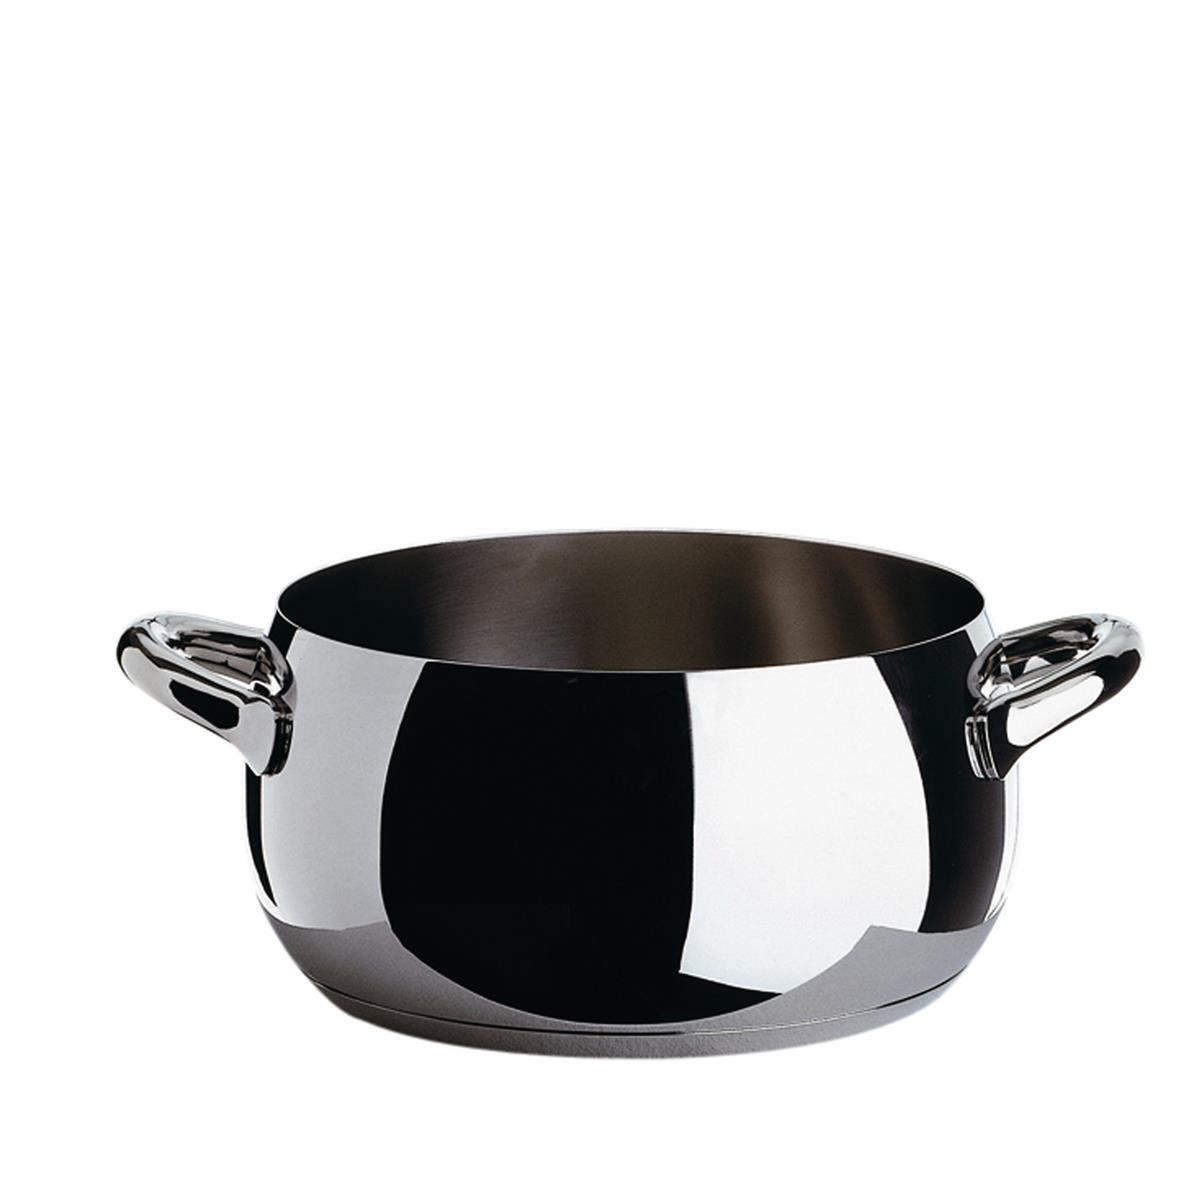 Alessi-Mami Casserole in 18/10 stainless steel also suitable for induction